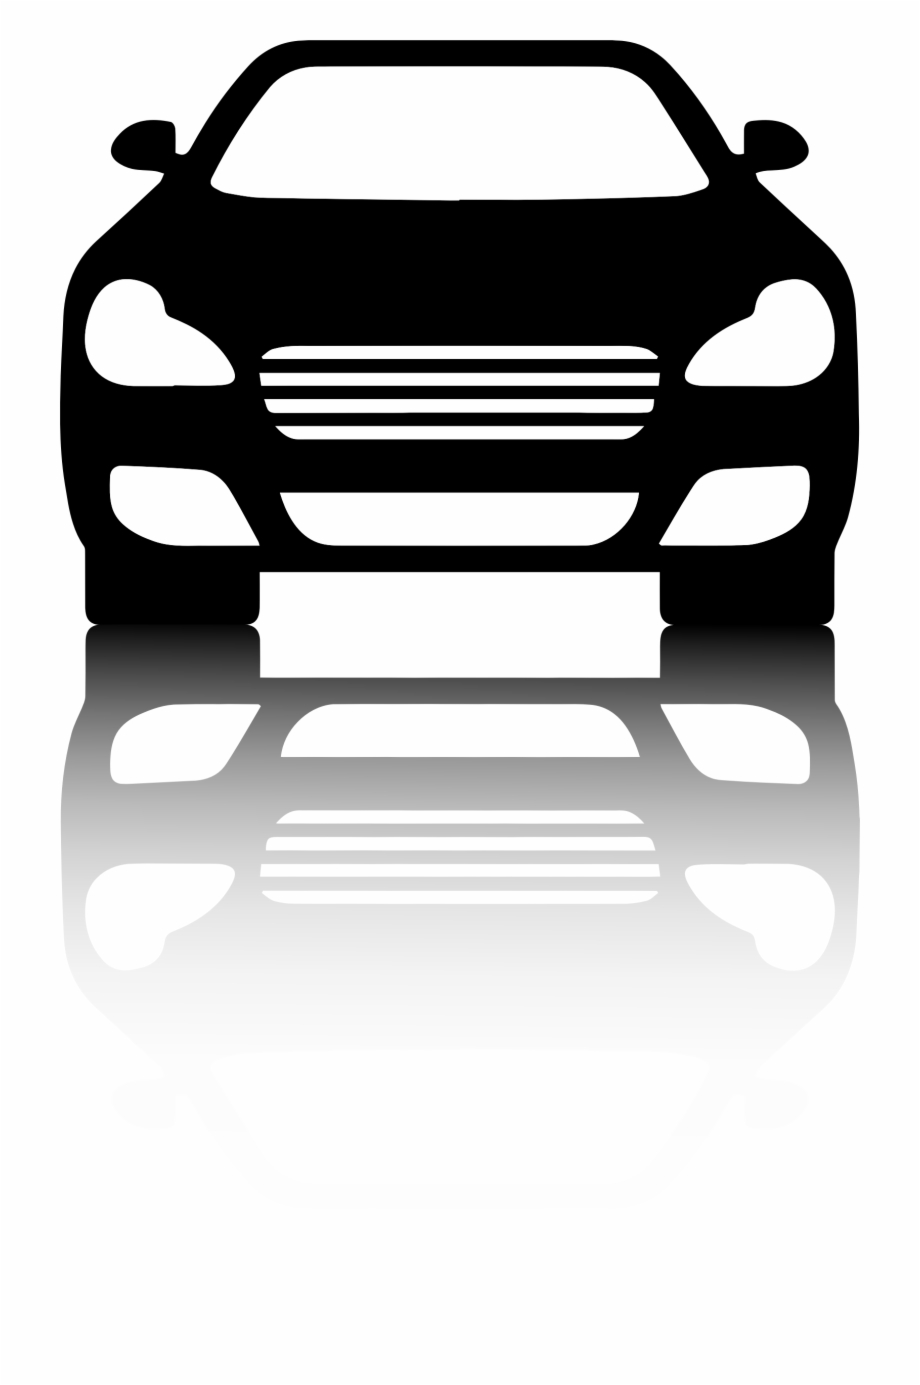 This Free Icons Png Design Of Black Car Front View.